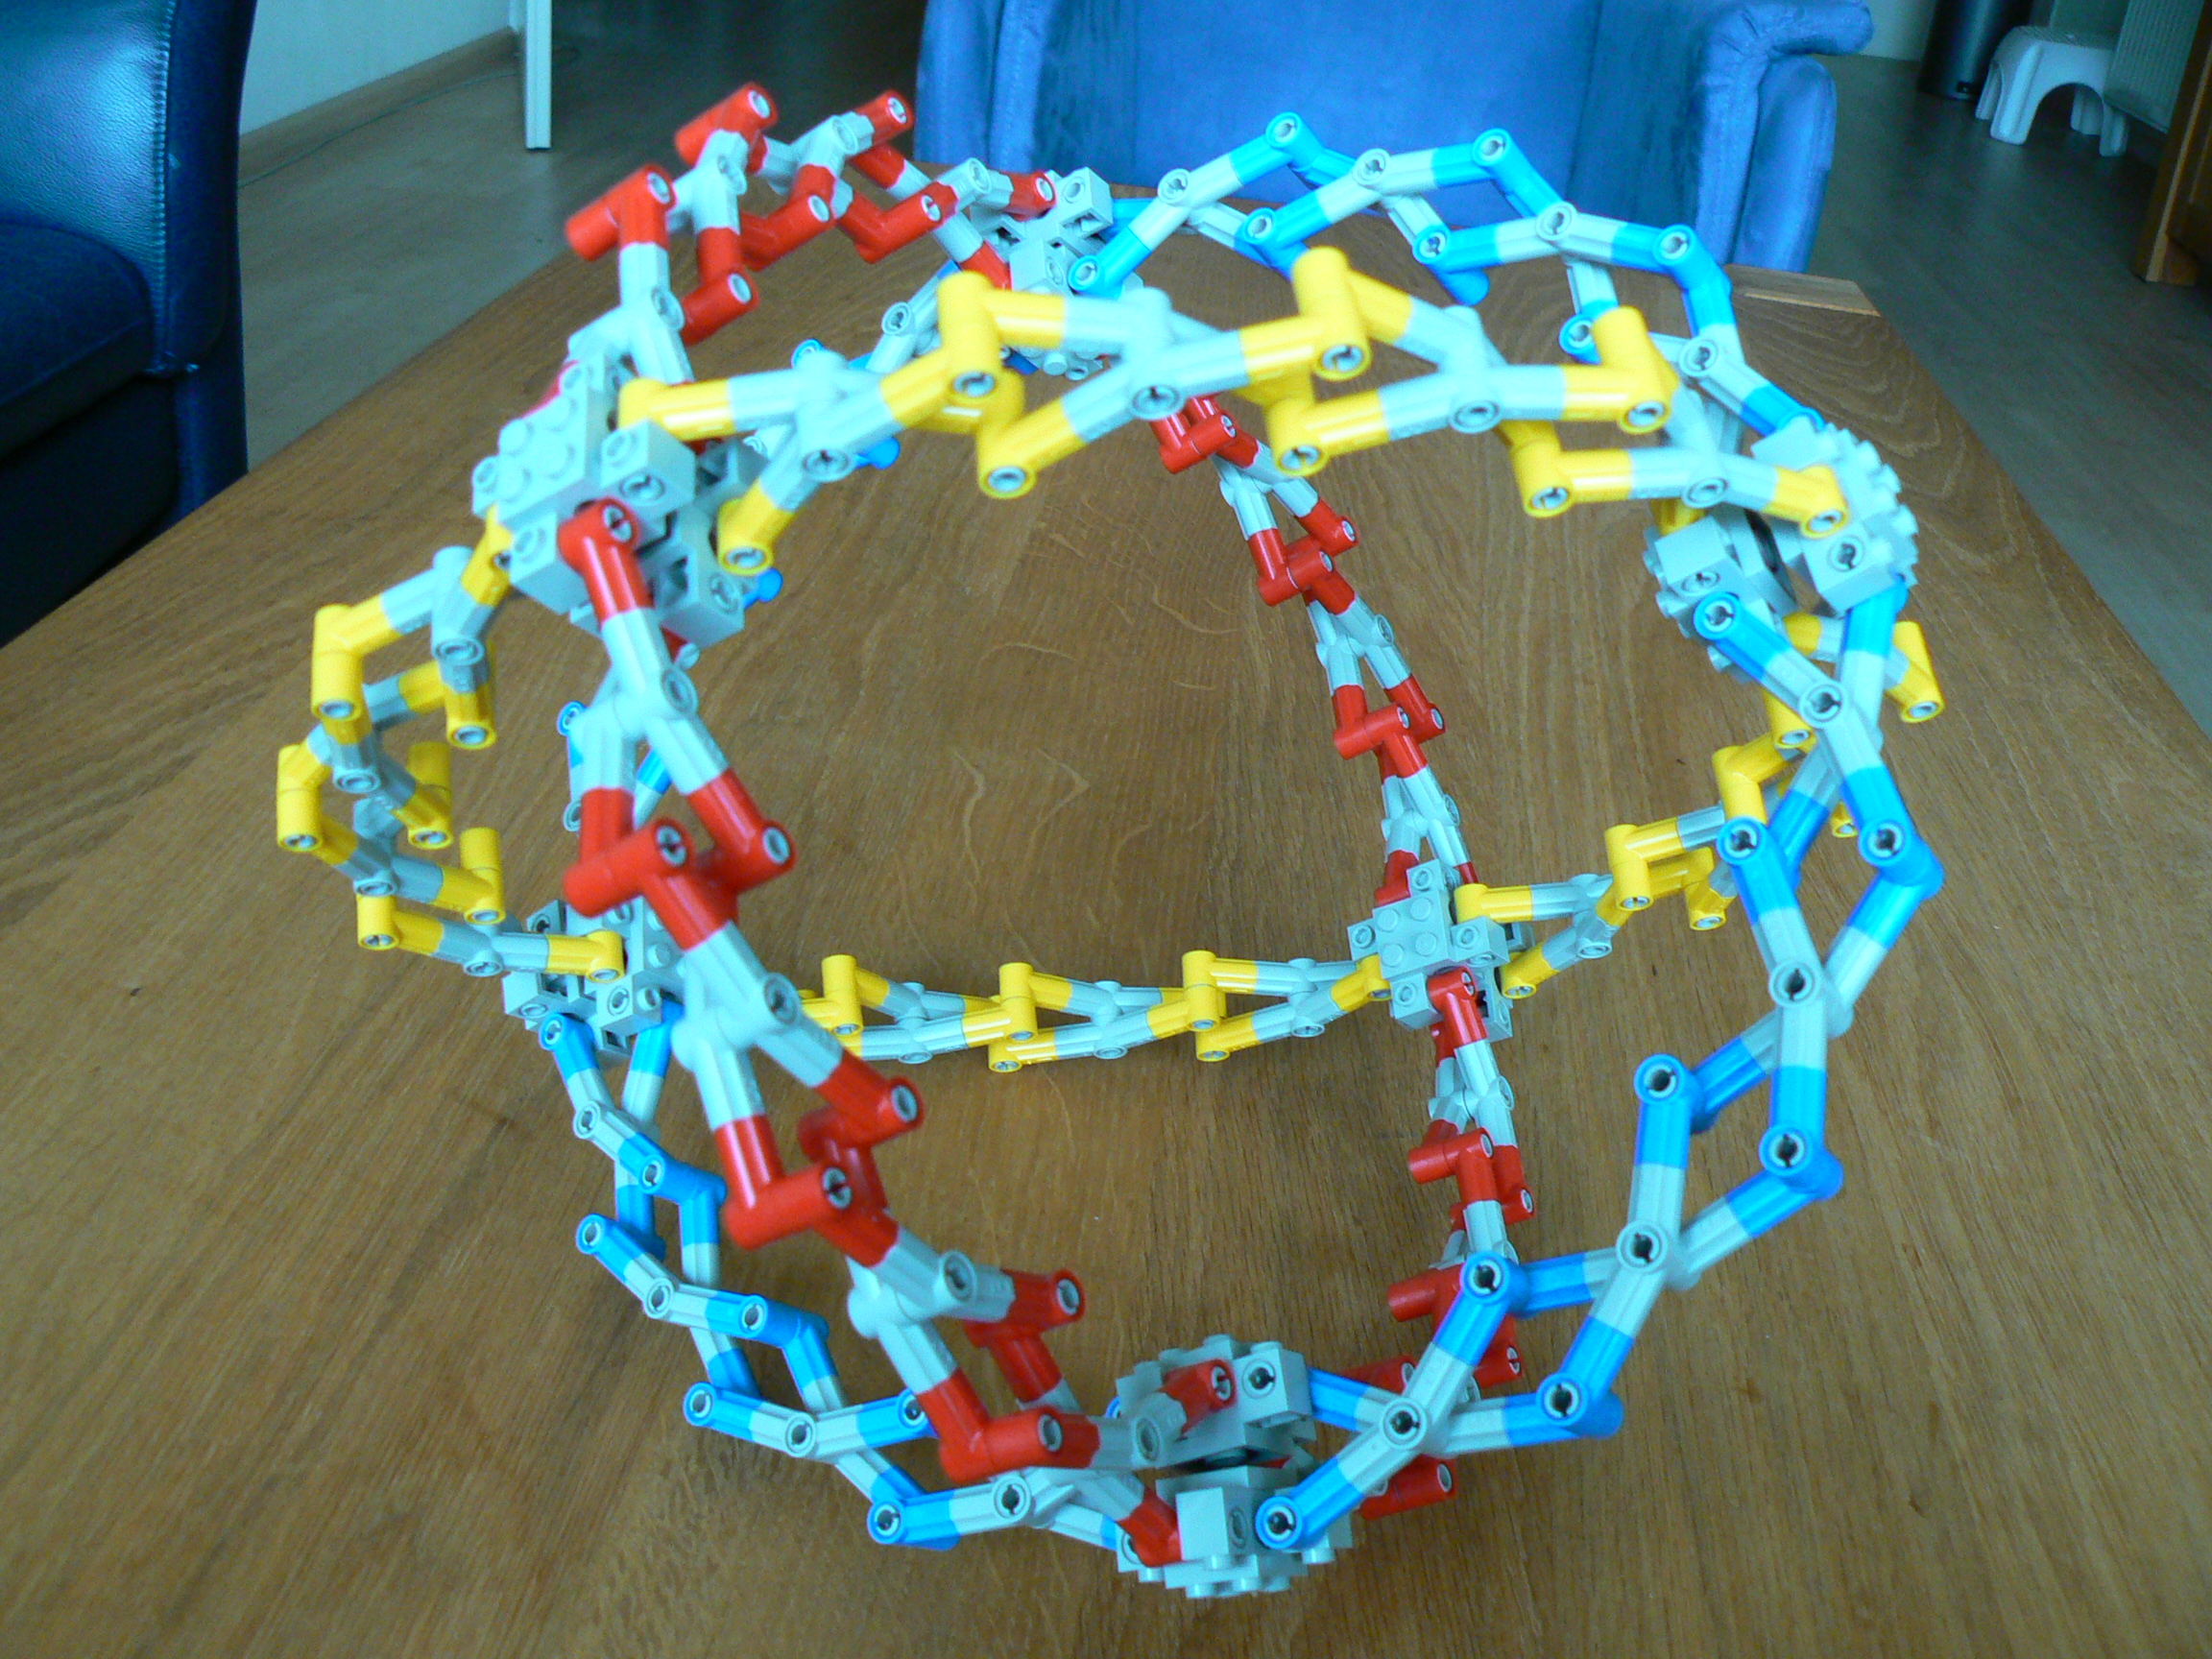 hoberman_sphere03.jpg